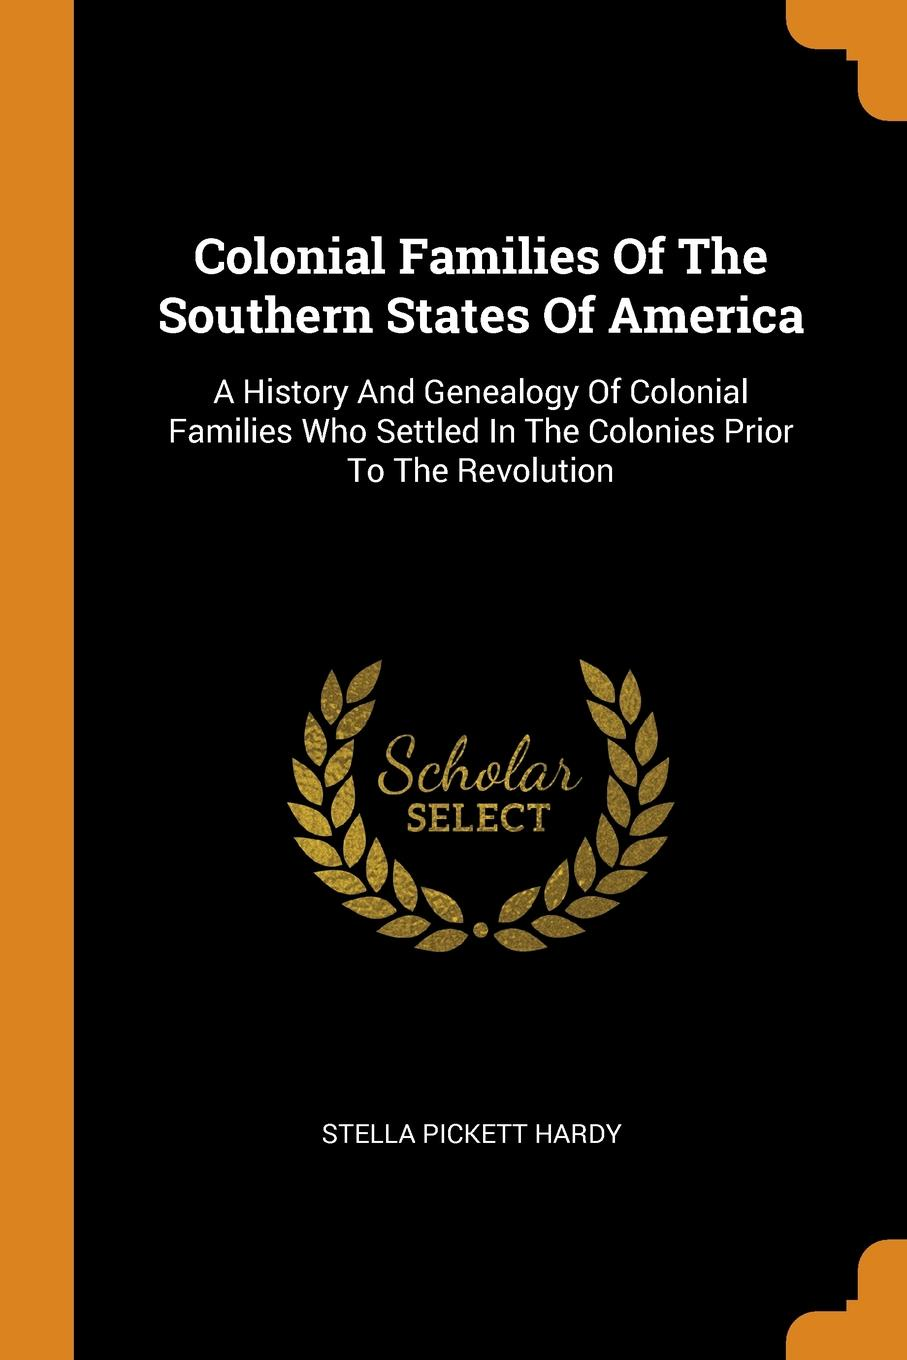 Stella Pickett Hardy Colonial Families Of The Southern States Of America. A History And Genealogy Of Colonial Families Who Settled In The Colonies Prior To The Revolution stella pickett hardy colonial families of the southern states of america a history and genealogy of colonial families who settled in the colonies prior to the revolution